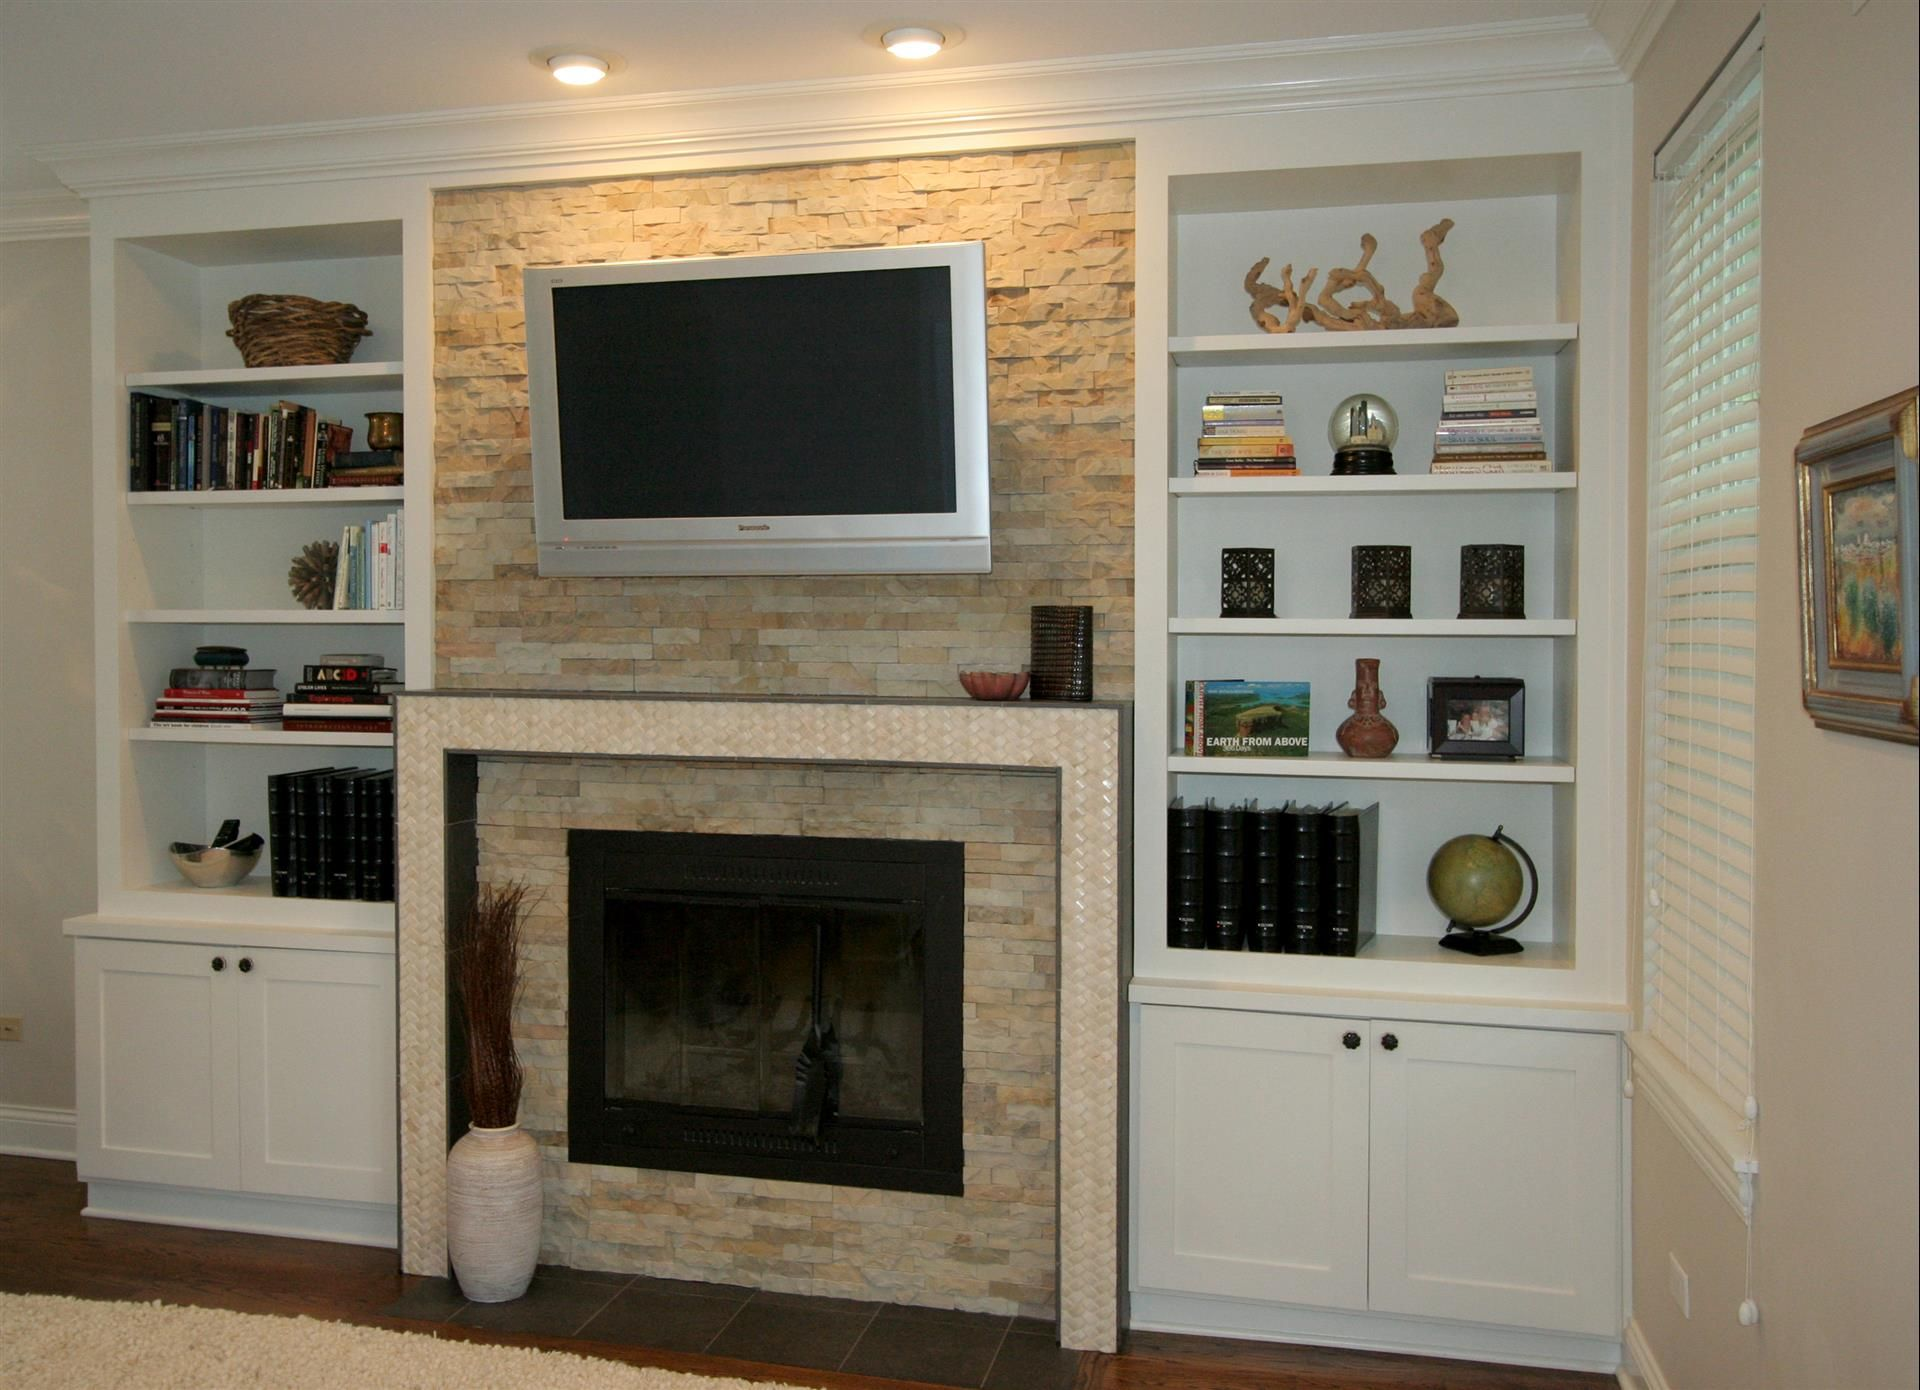 Built In Entertainment Center Design Ideas home entertainment center ideas_18 Glorious White Wooden Fireplace Entertainment Center With Bookshelves Also Ceiling Lights As Modern White Family Room Decorating Ideas